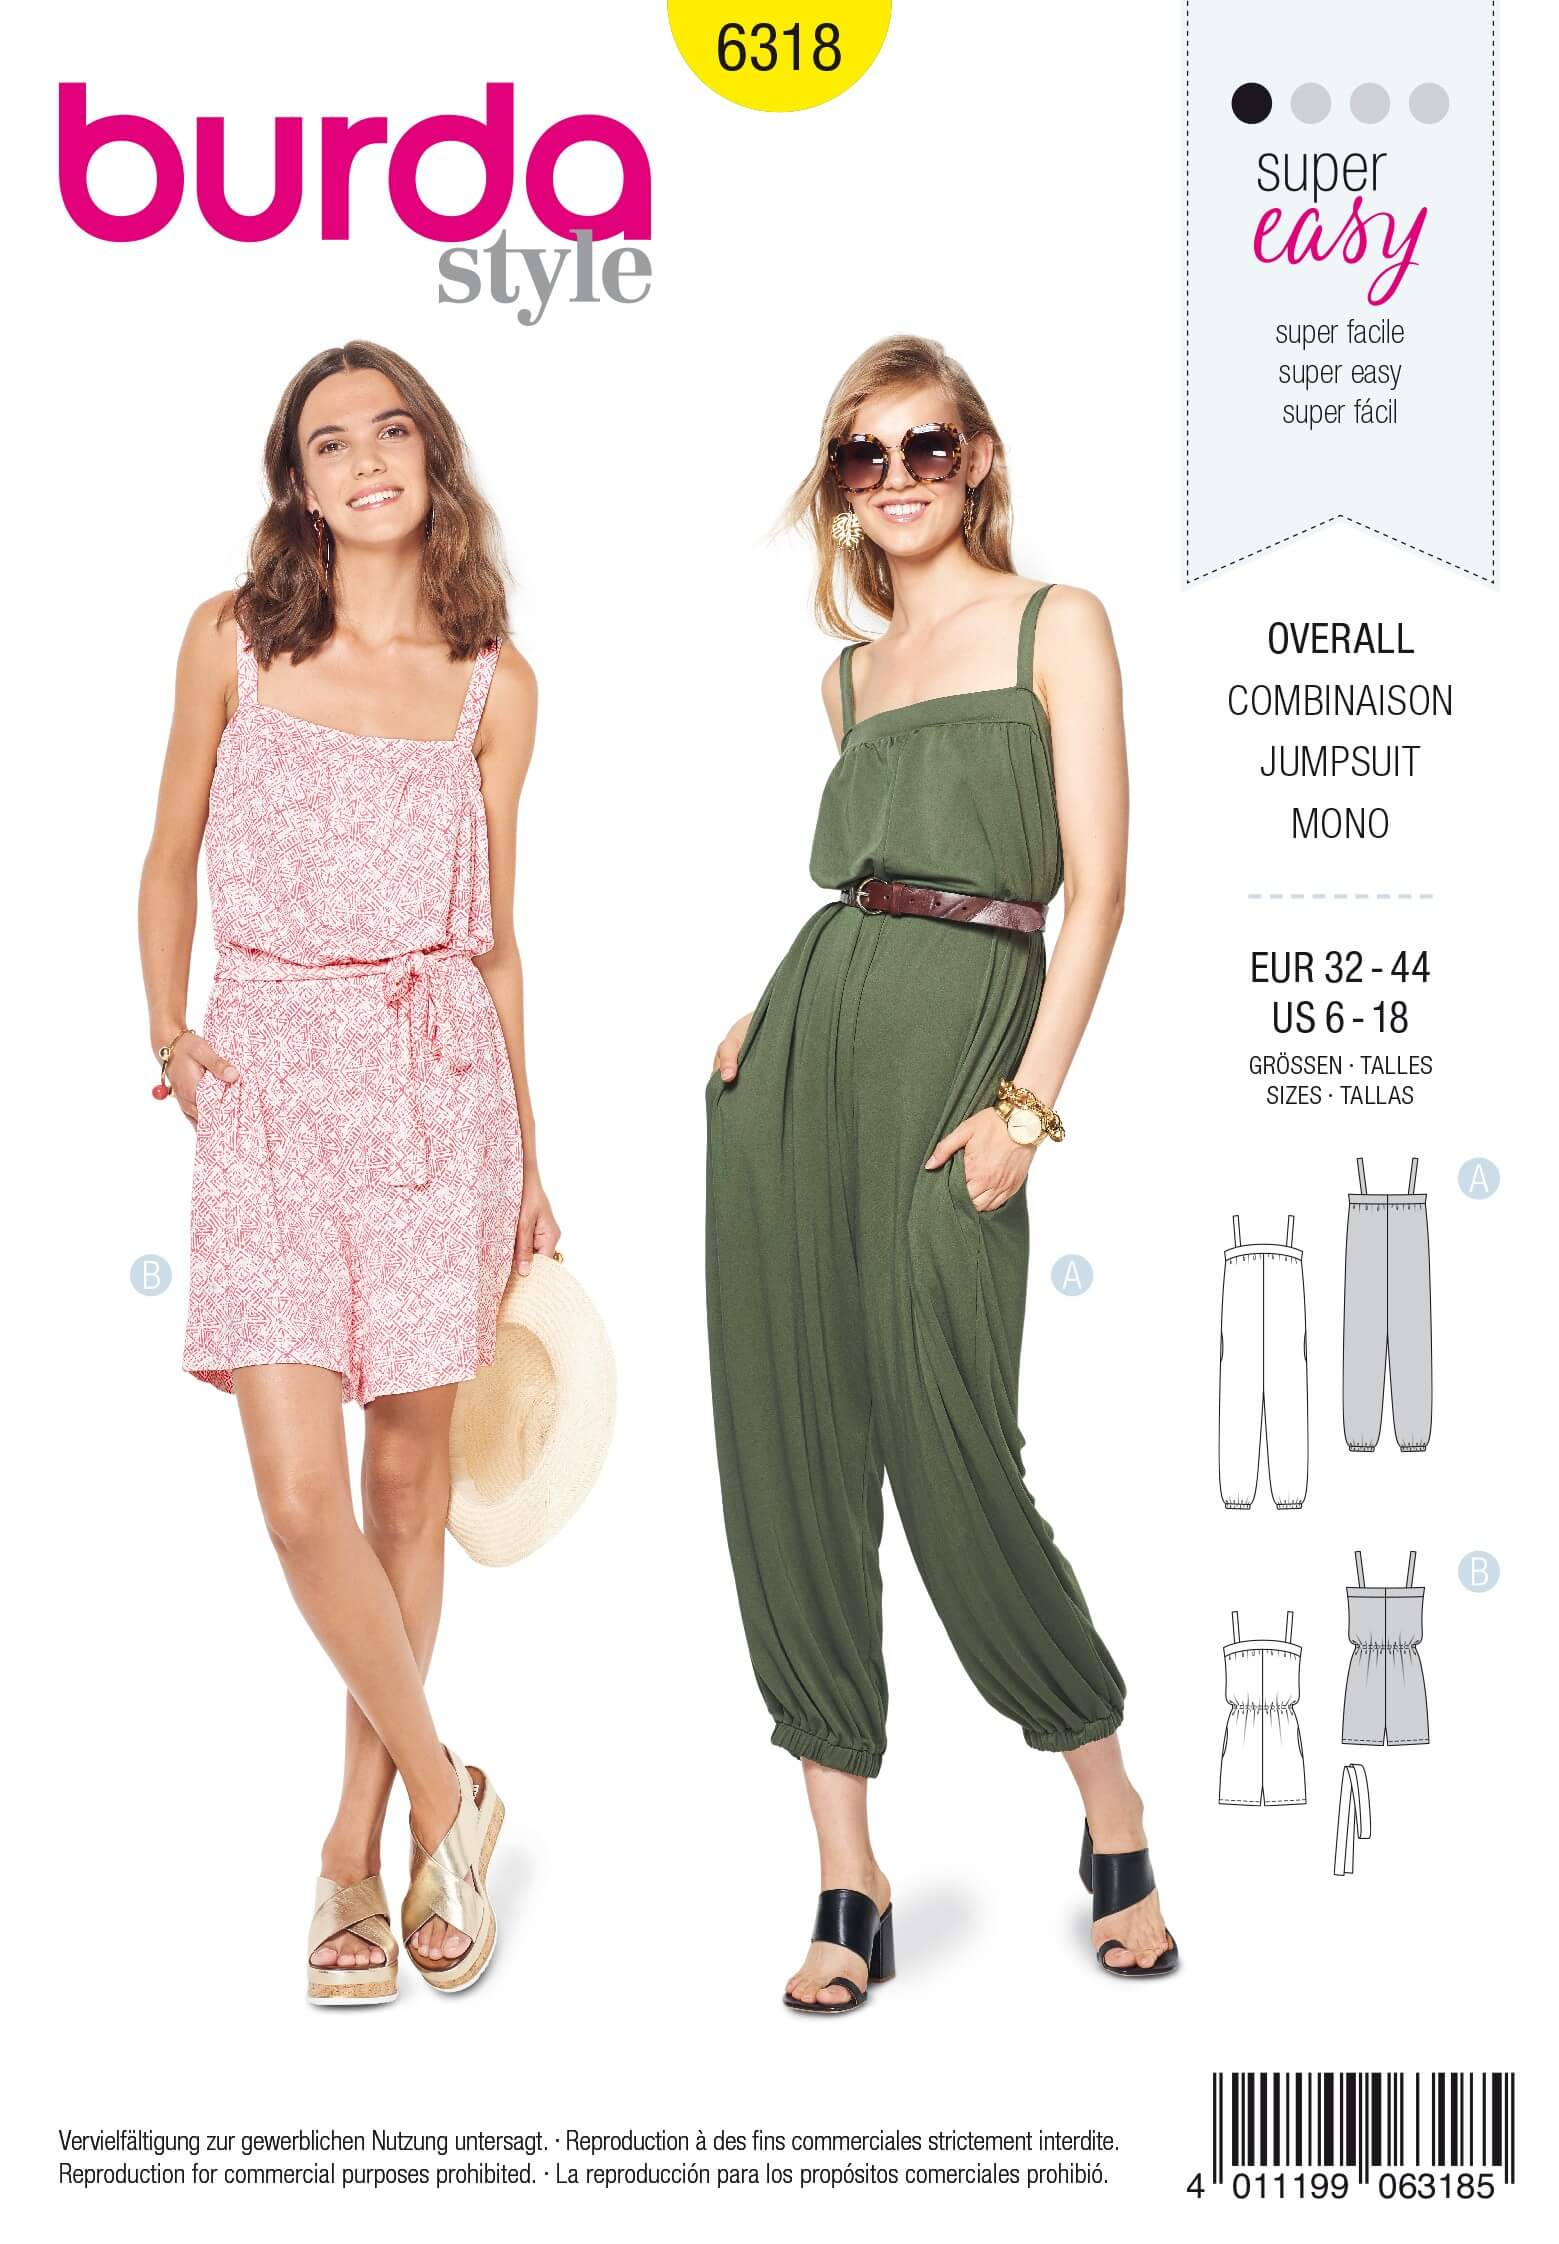 Burda Style Misses' Jumpsuit Romper Onesie Summer Wear Sewing Pattern 6318